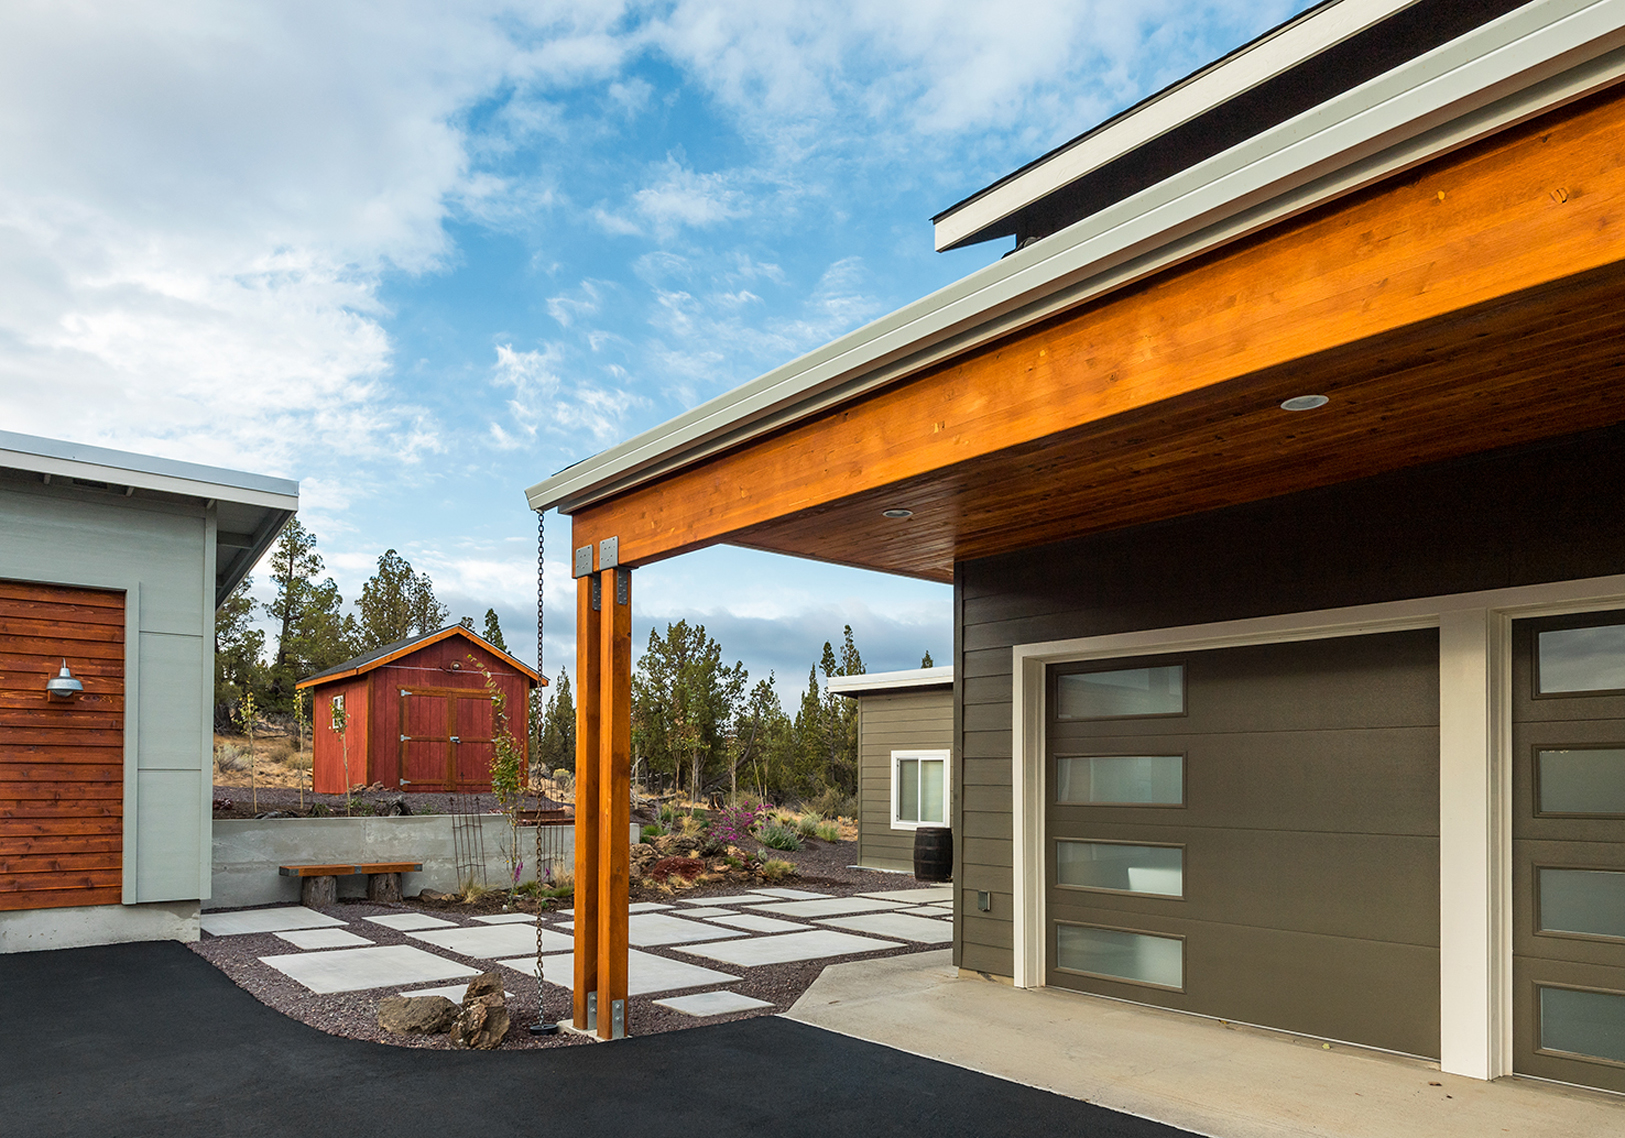 pgc-building-design-bend-oregon-parno-rgb-1625px-PGC-0998